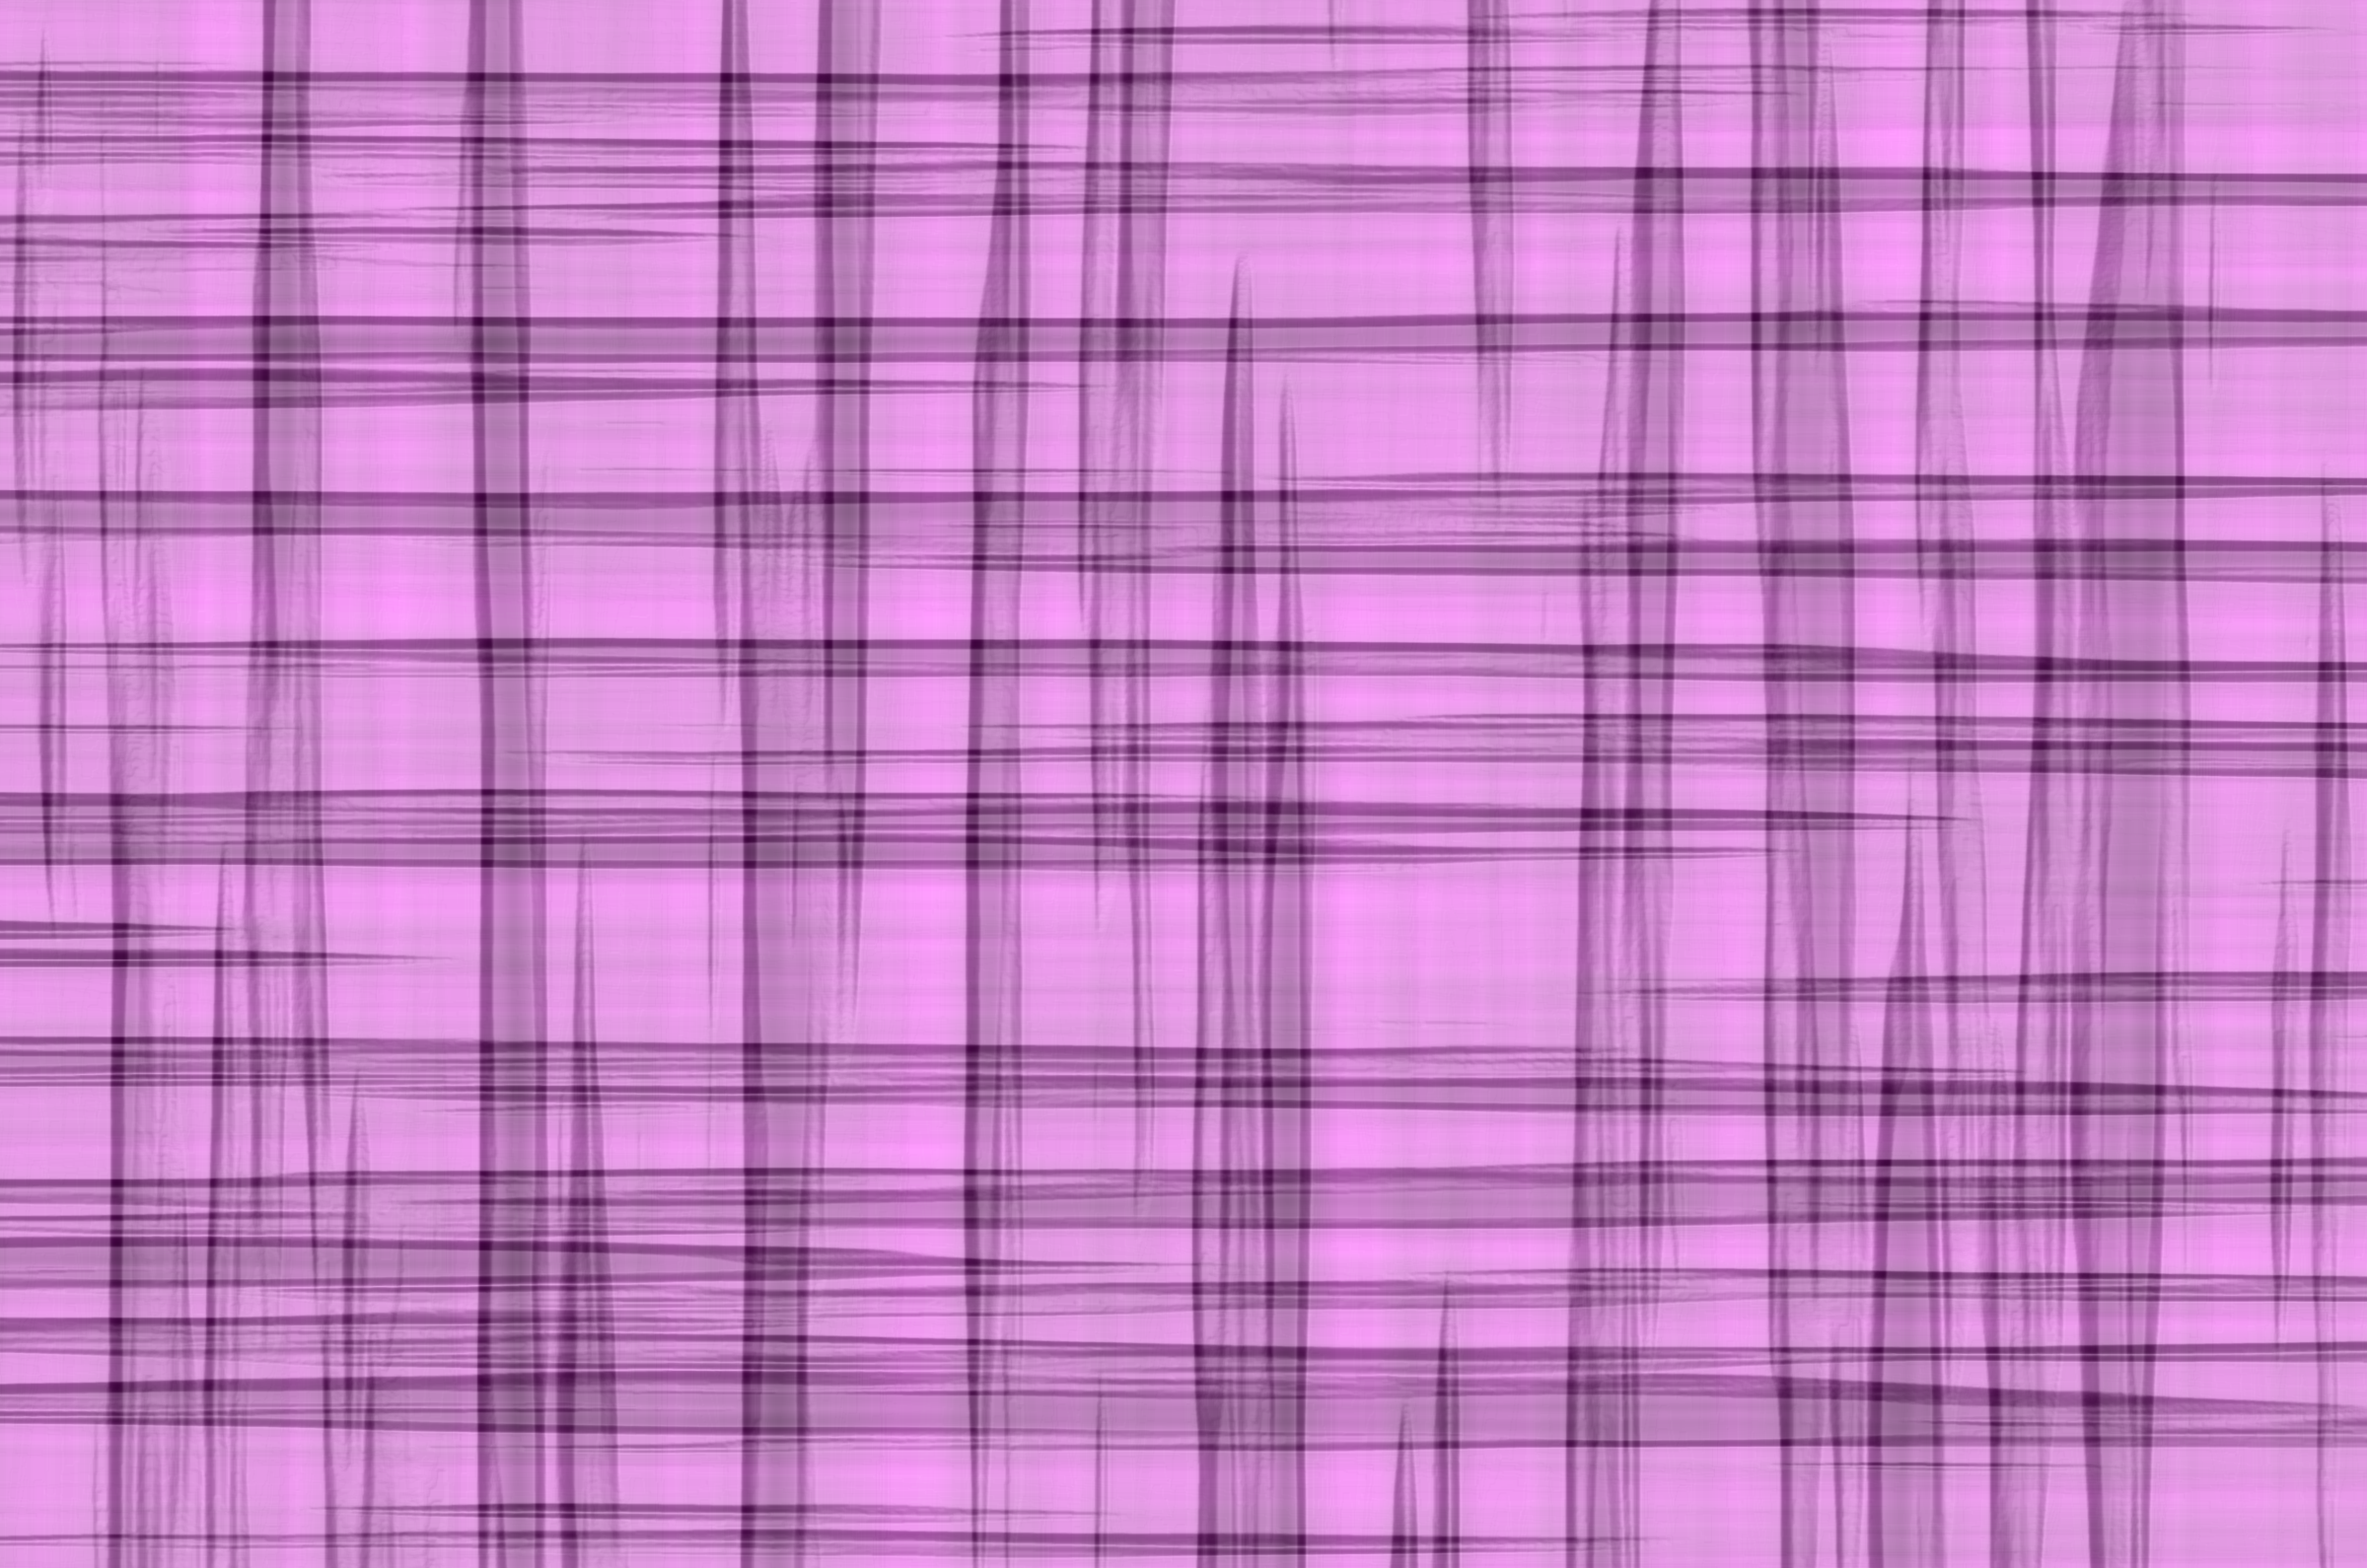 Background pattern 237 (colour 6) by Firkin